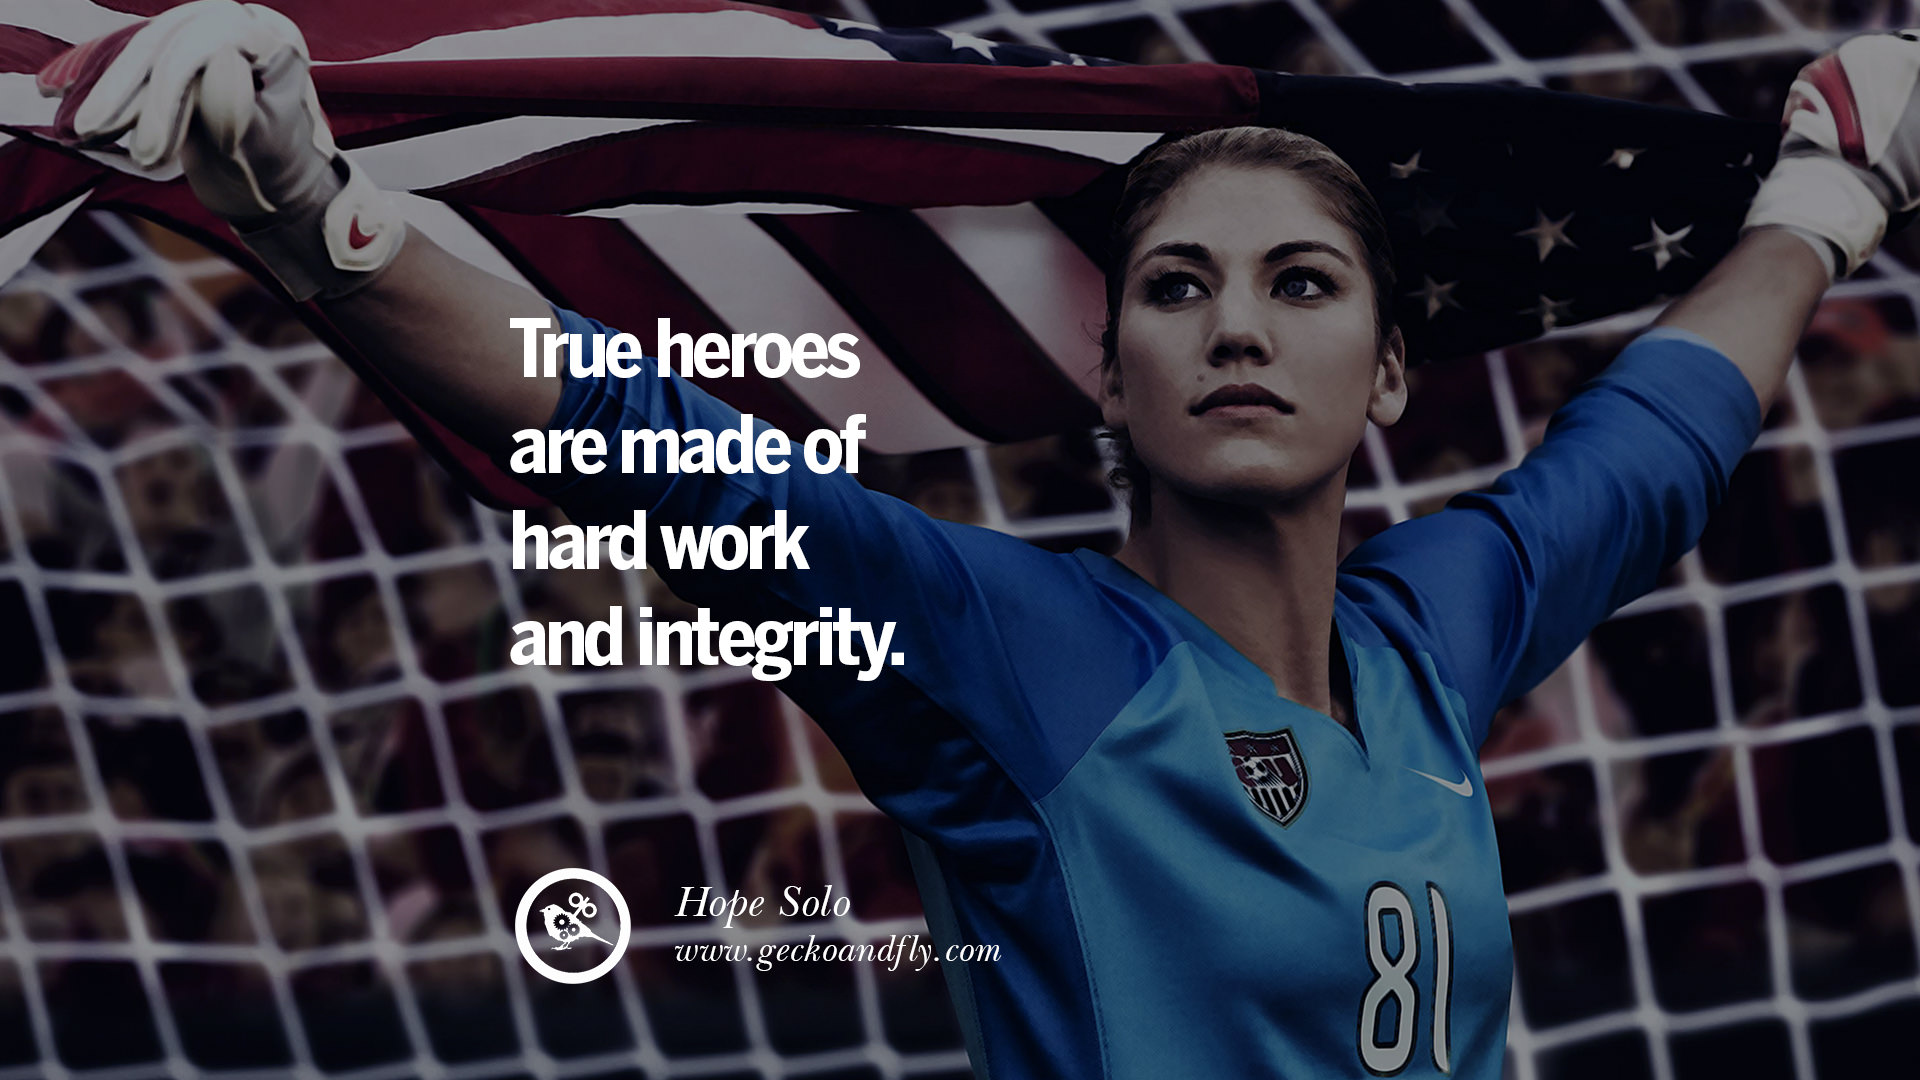 31 Inspirational Quotes By Olympic Athletes On The Spirit Of